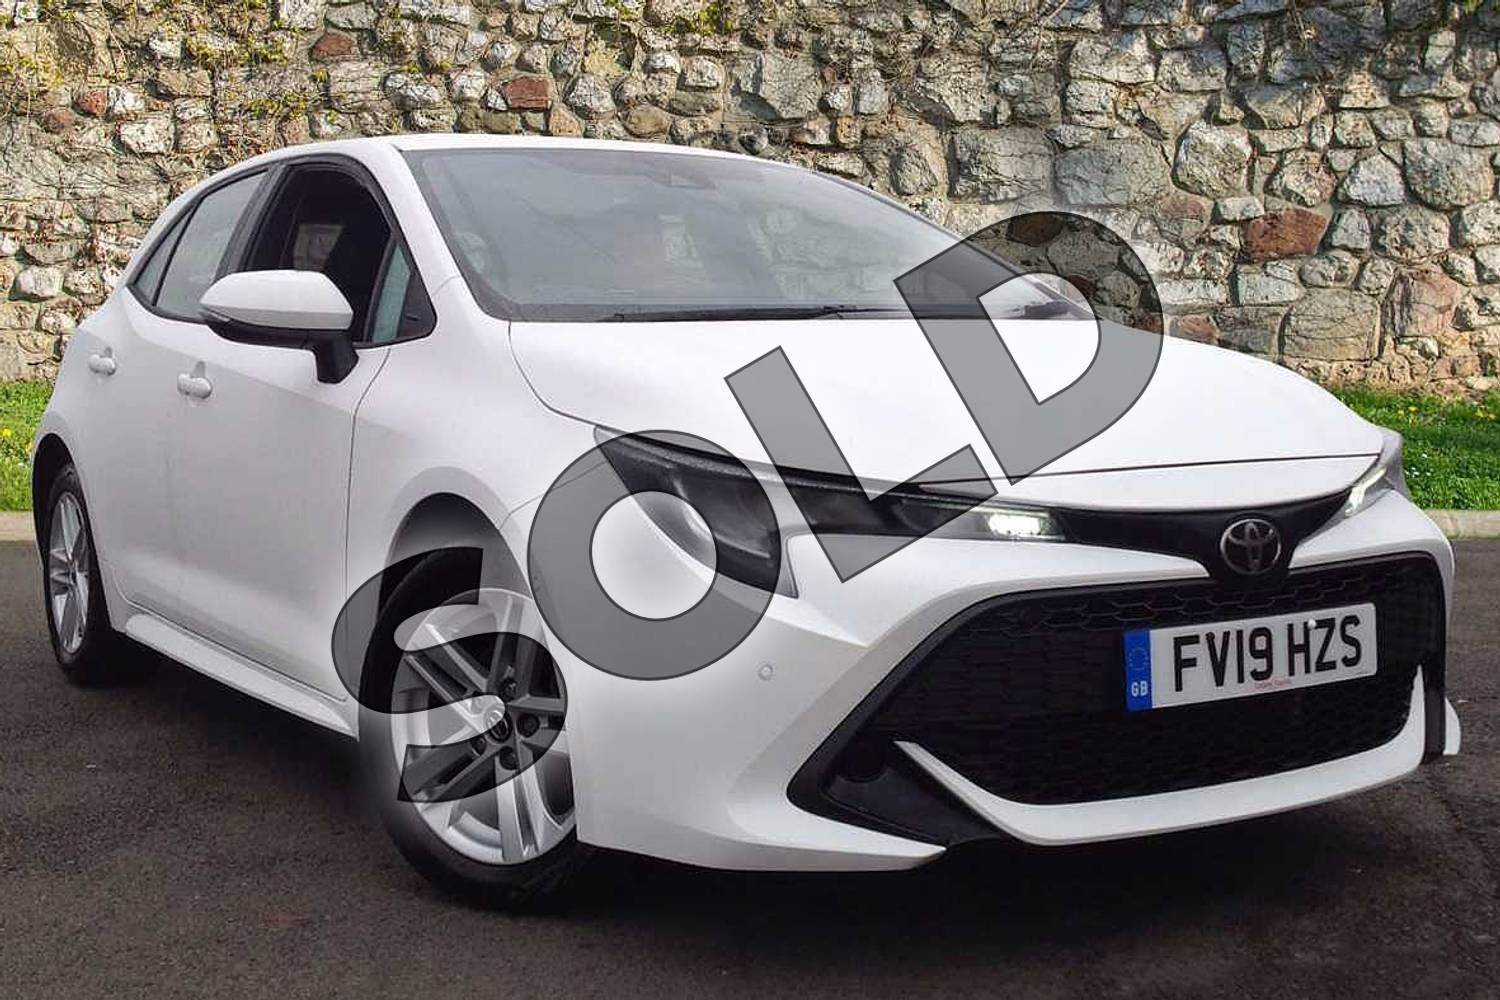 2019 Toyota Corolla Hatchback 1.2T VVT-i Icon Tech 5dr in White at Listers Toyota Lincoln